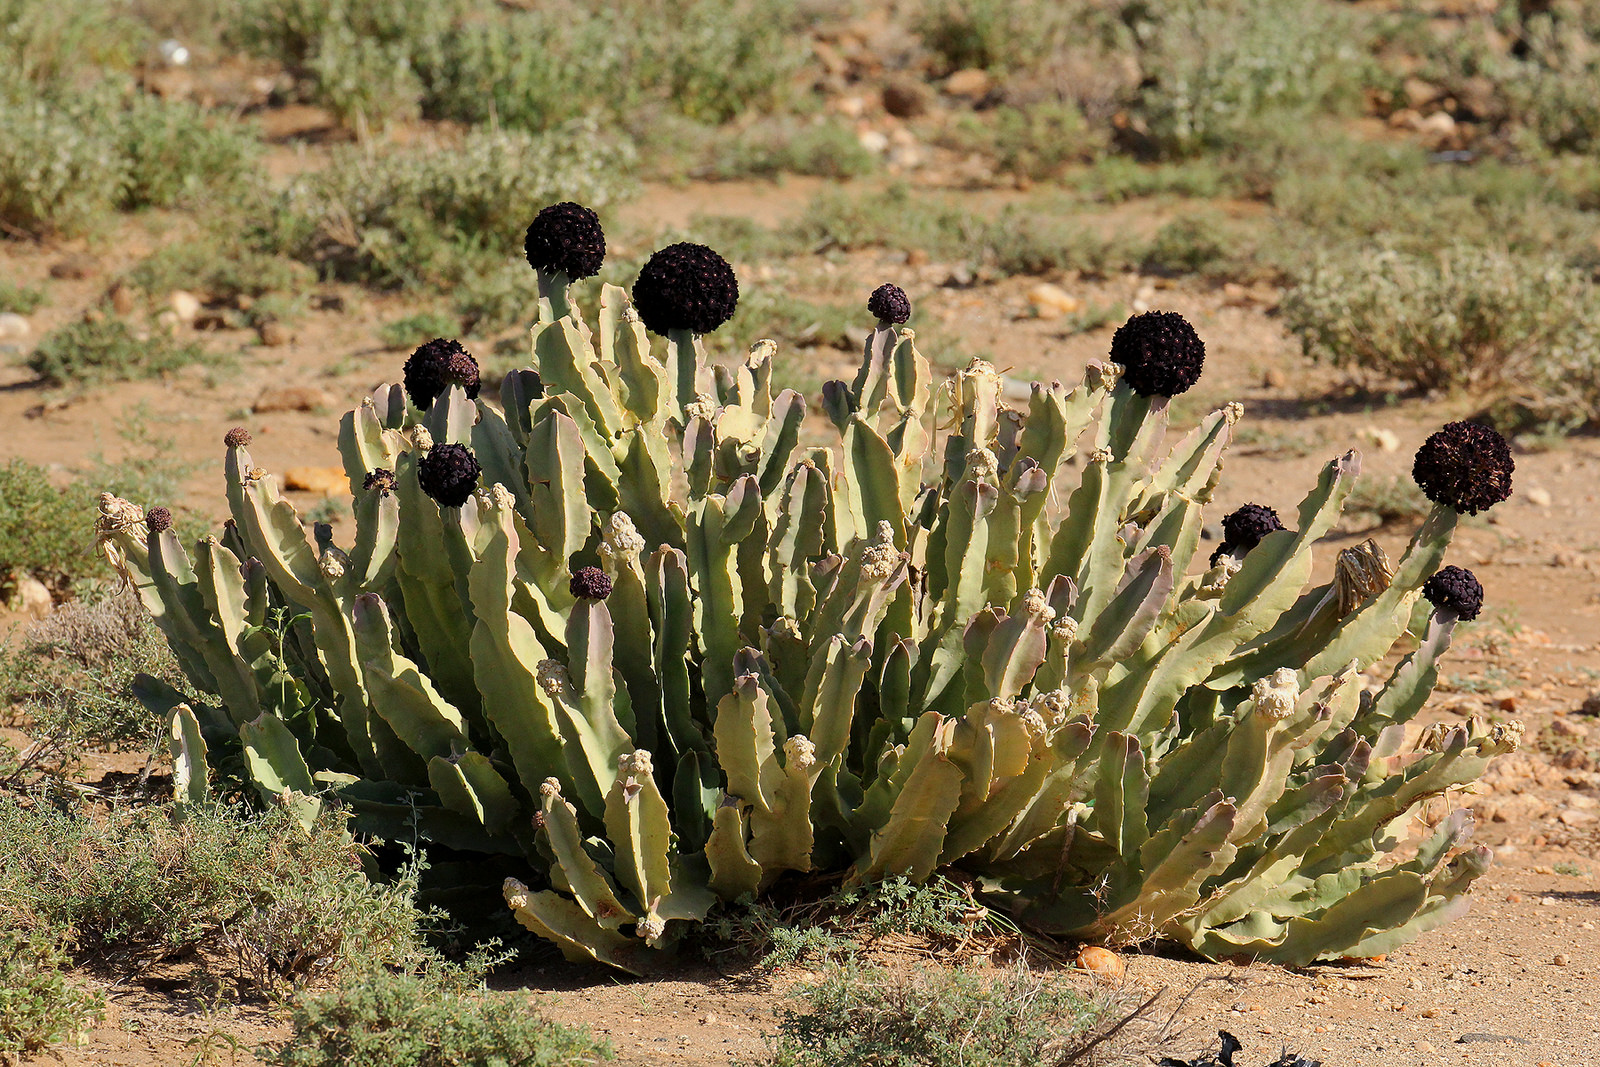 Caralluma retrospiciens in habitat